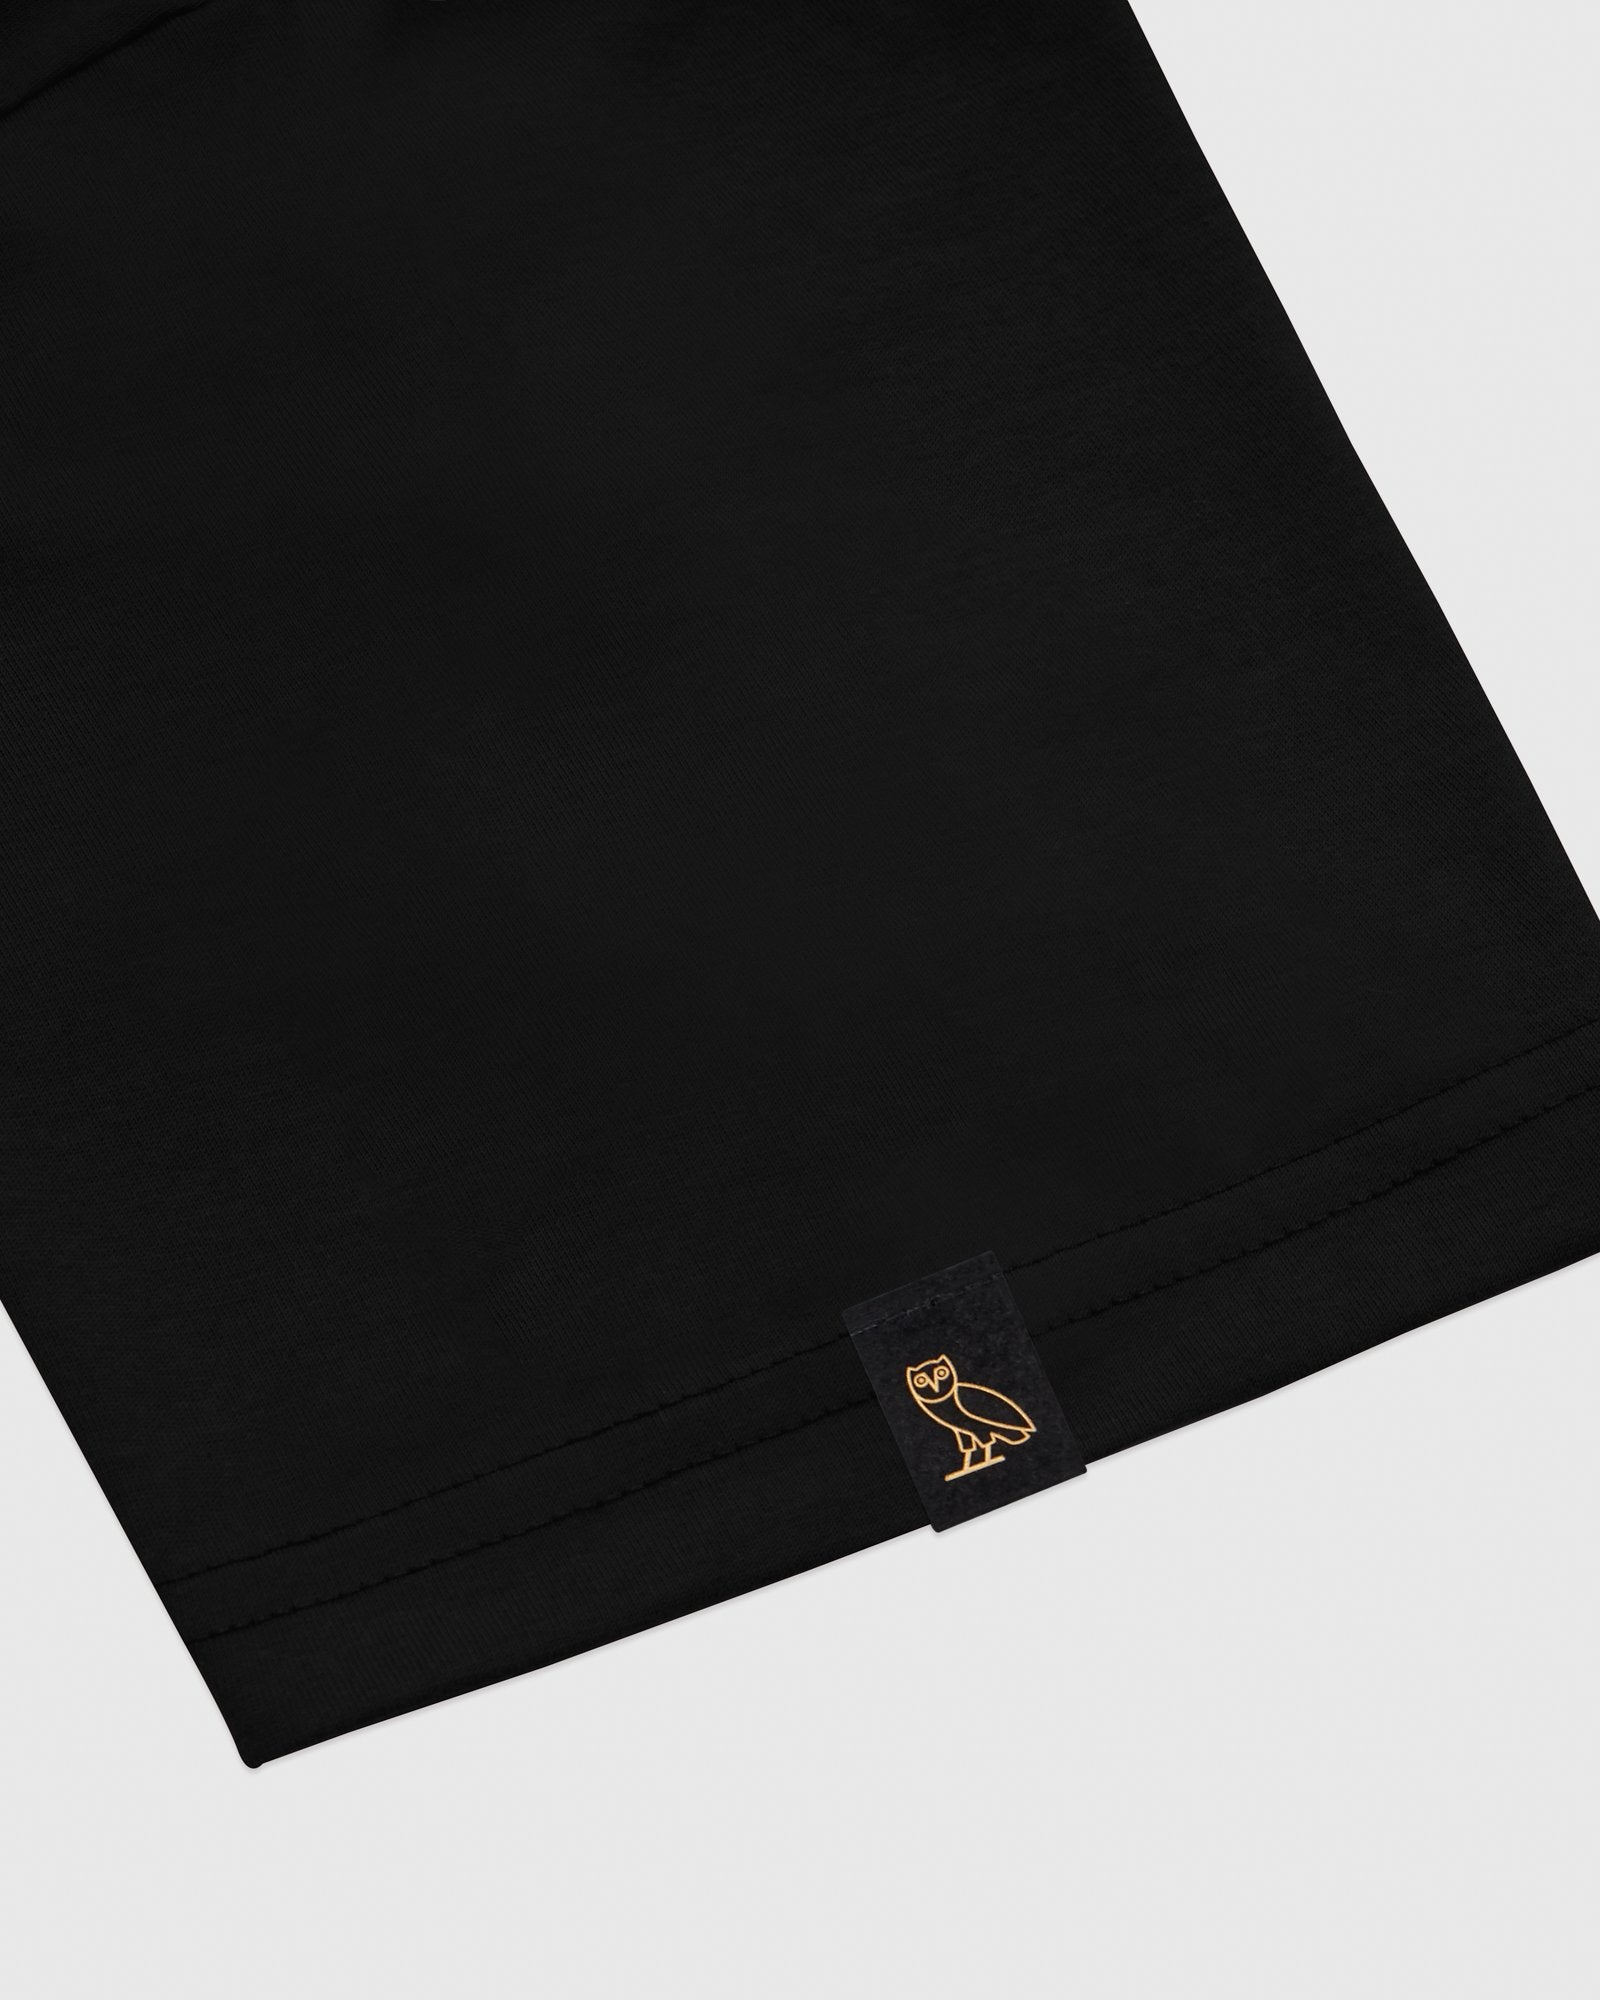 ROYAL EMBLEM T-SHIRT - BLACK IMAGE #5